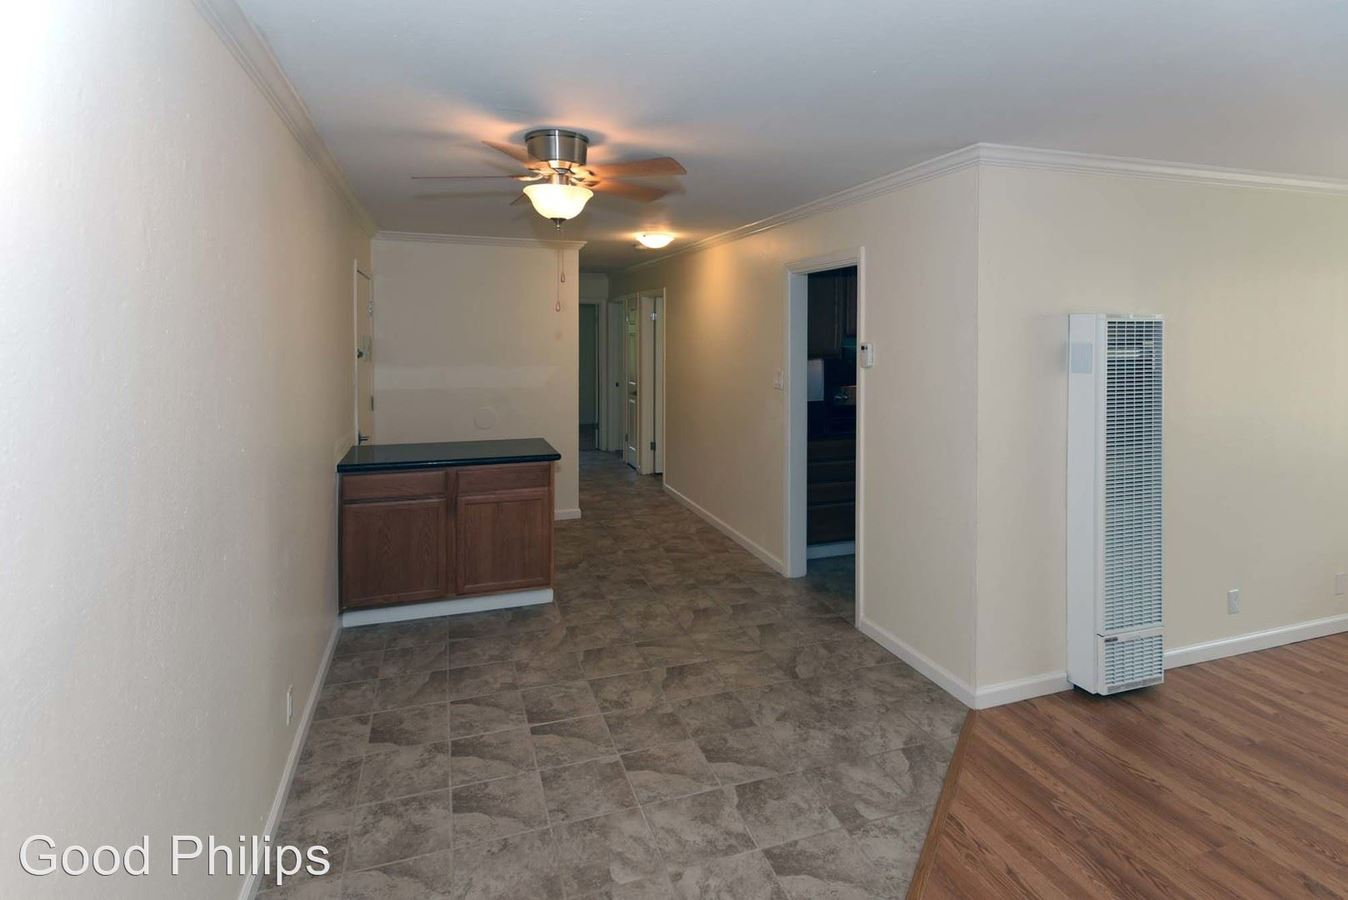 2 Bedrooms 1 Bathroom Apartment for rent at 1232 East 19th Street in Oakland, CA